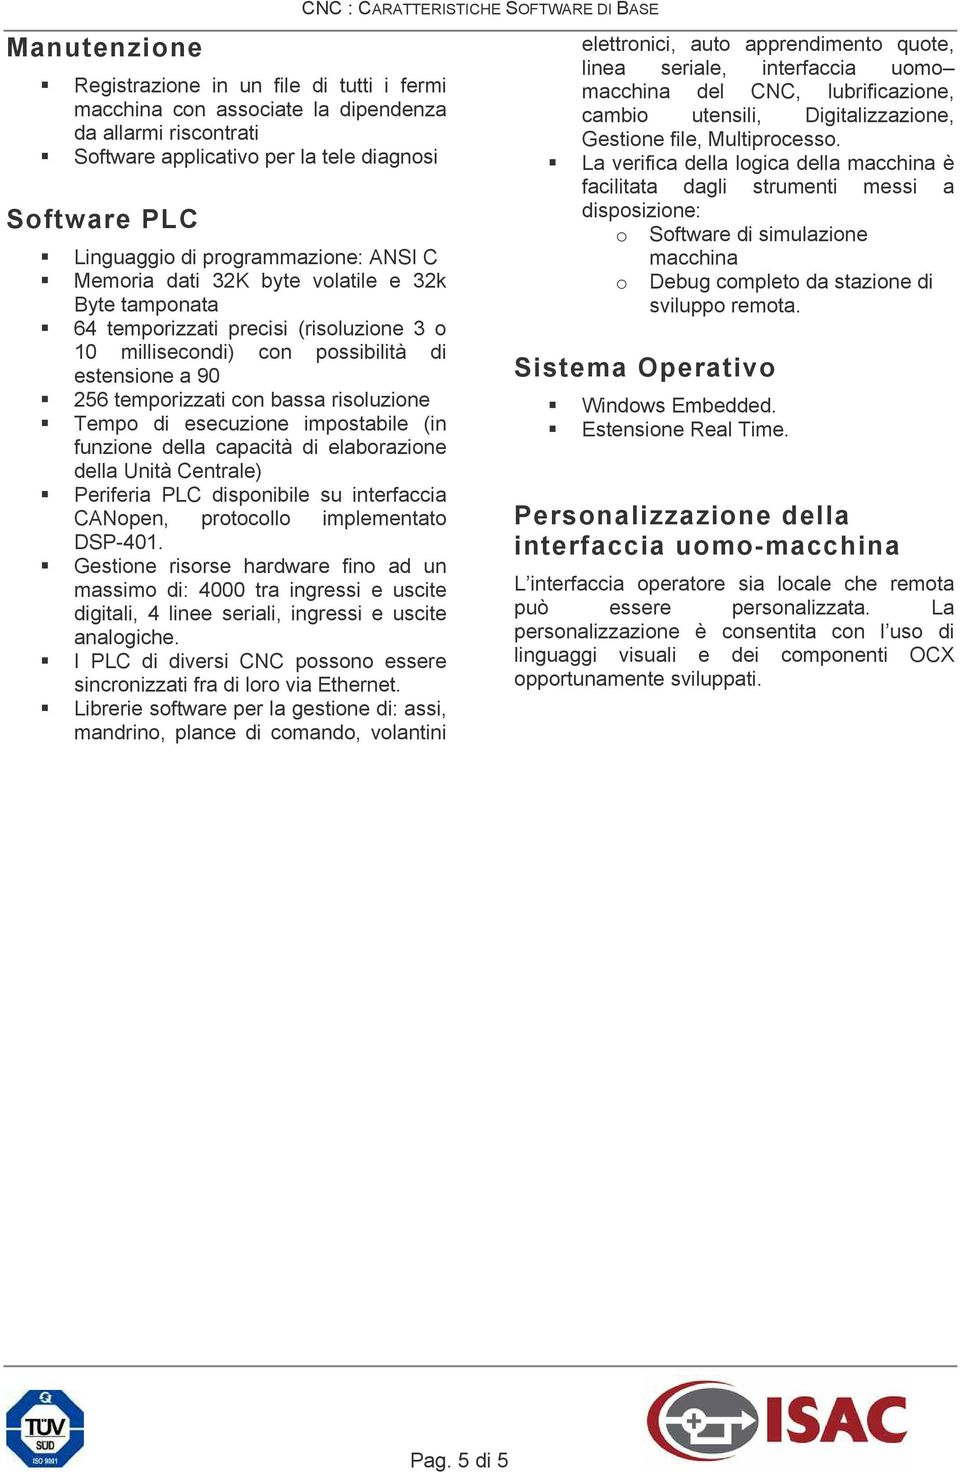 esecuzione impostabile (in funzione della capacità di elaborazione della Unità Centrale) Periferia PLC disponibile su interfaccia CANopen, protocollo implementato DSP-401.